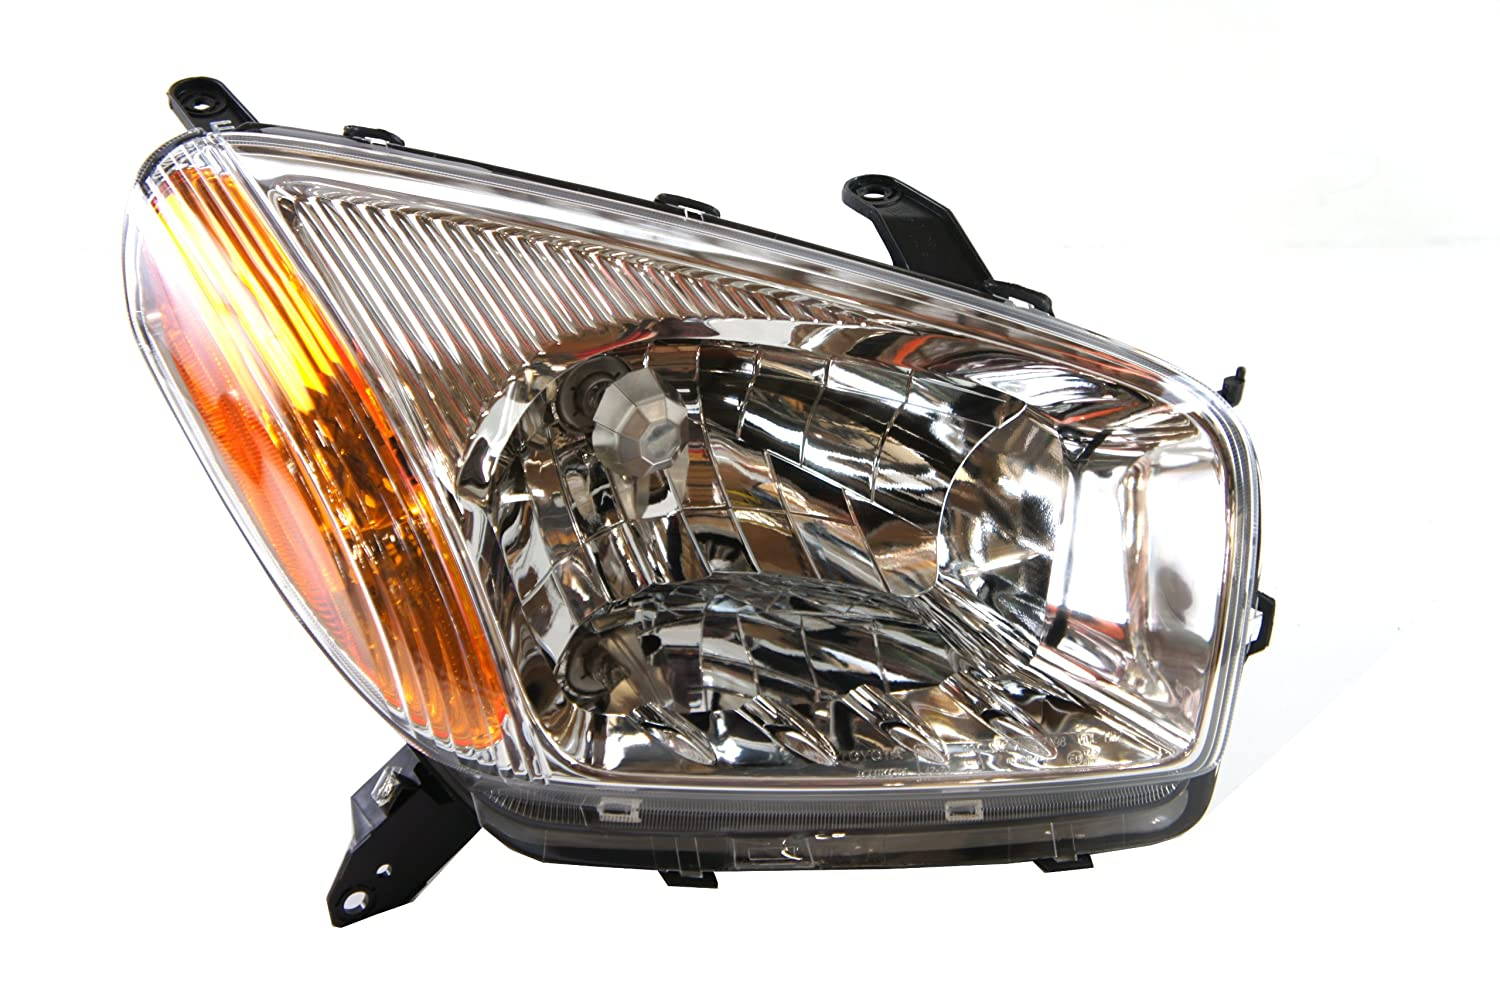 Genuine Toyota Parts 81110-42190 Passenger Side Headlight Assembly Composite